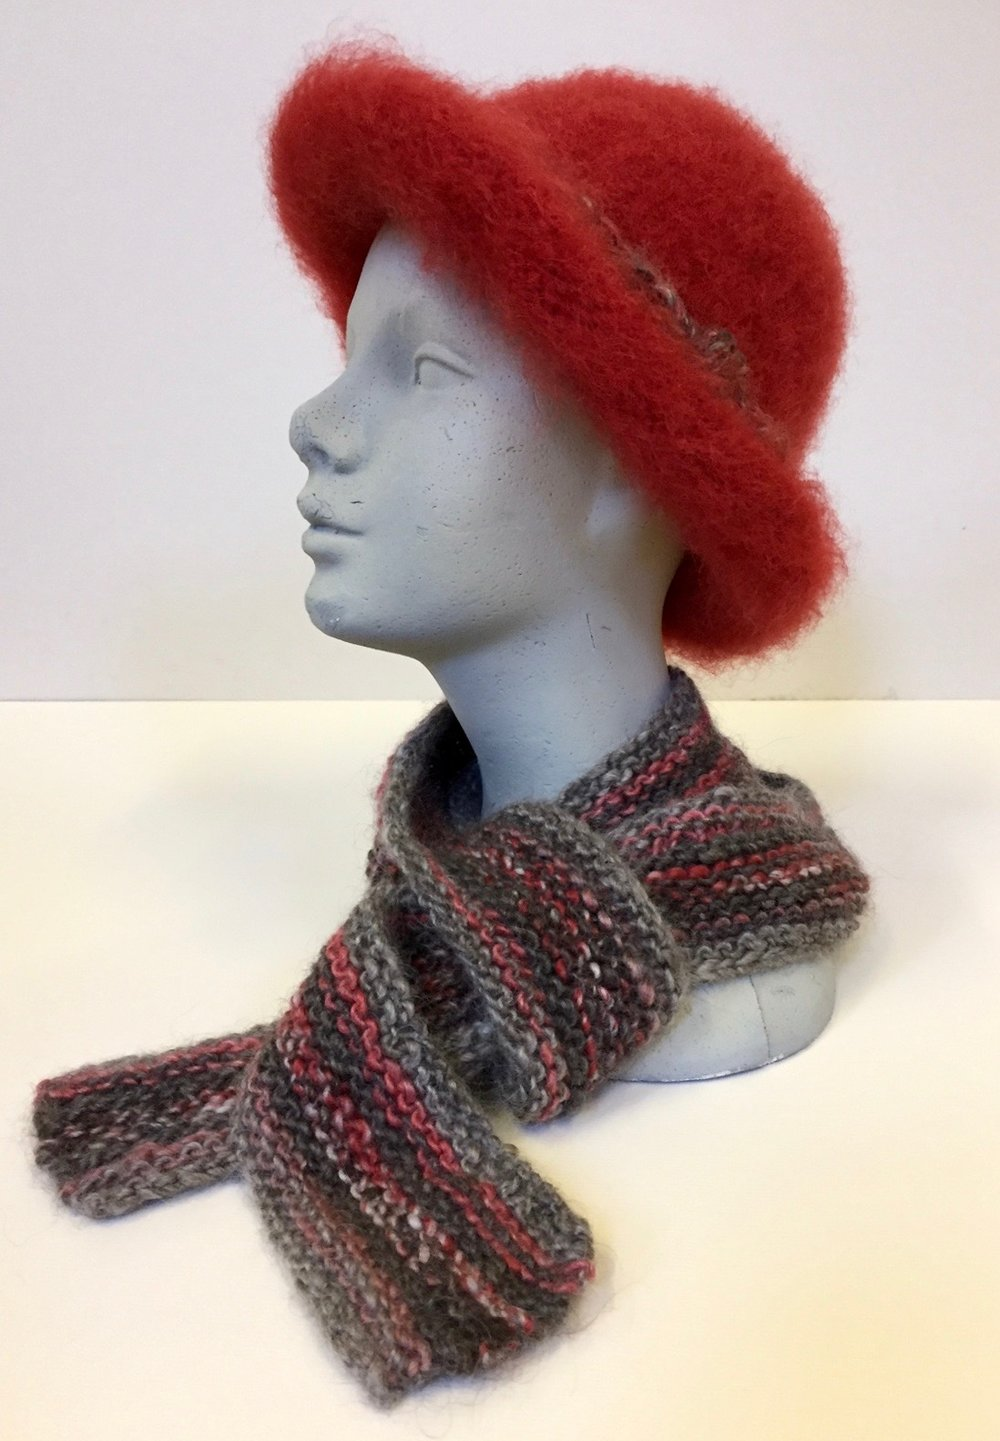 Felted Wool Hat and Hand-knitted Scarf by Betsy Viola Auction Item #110 and #111